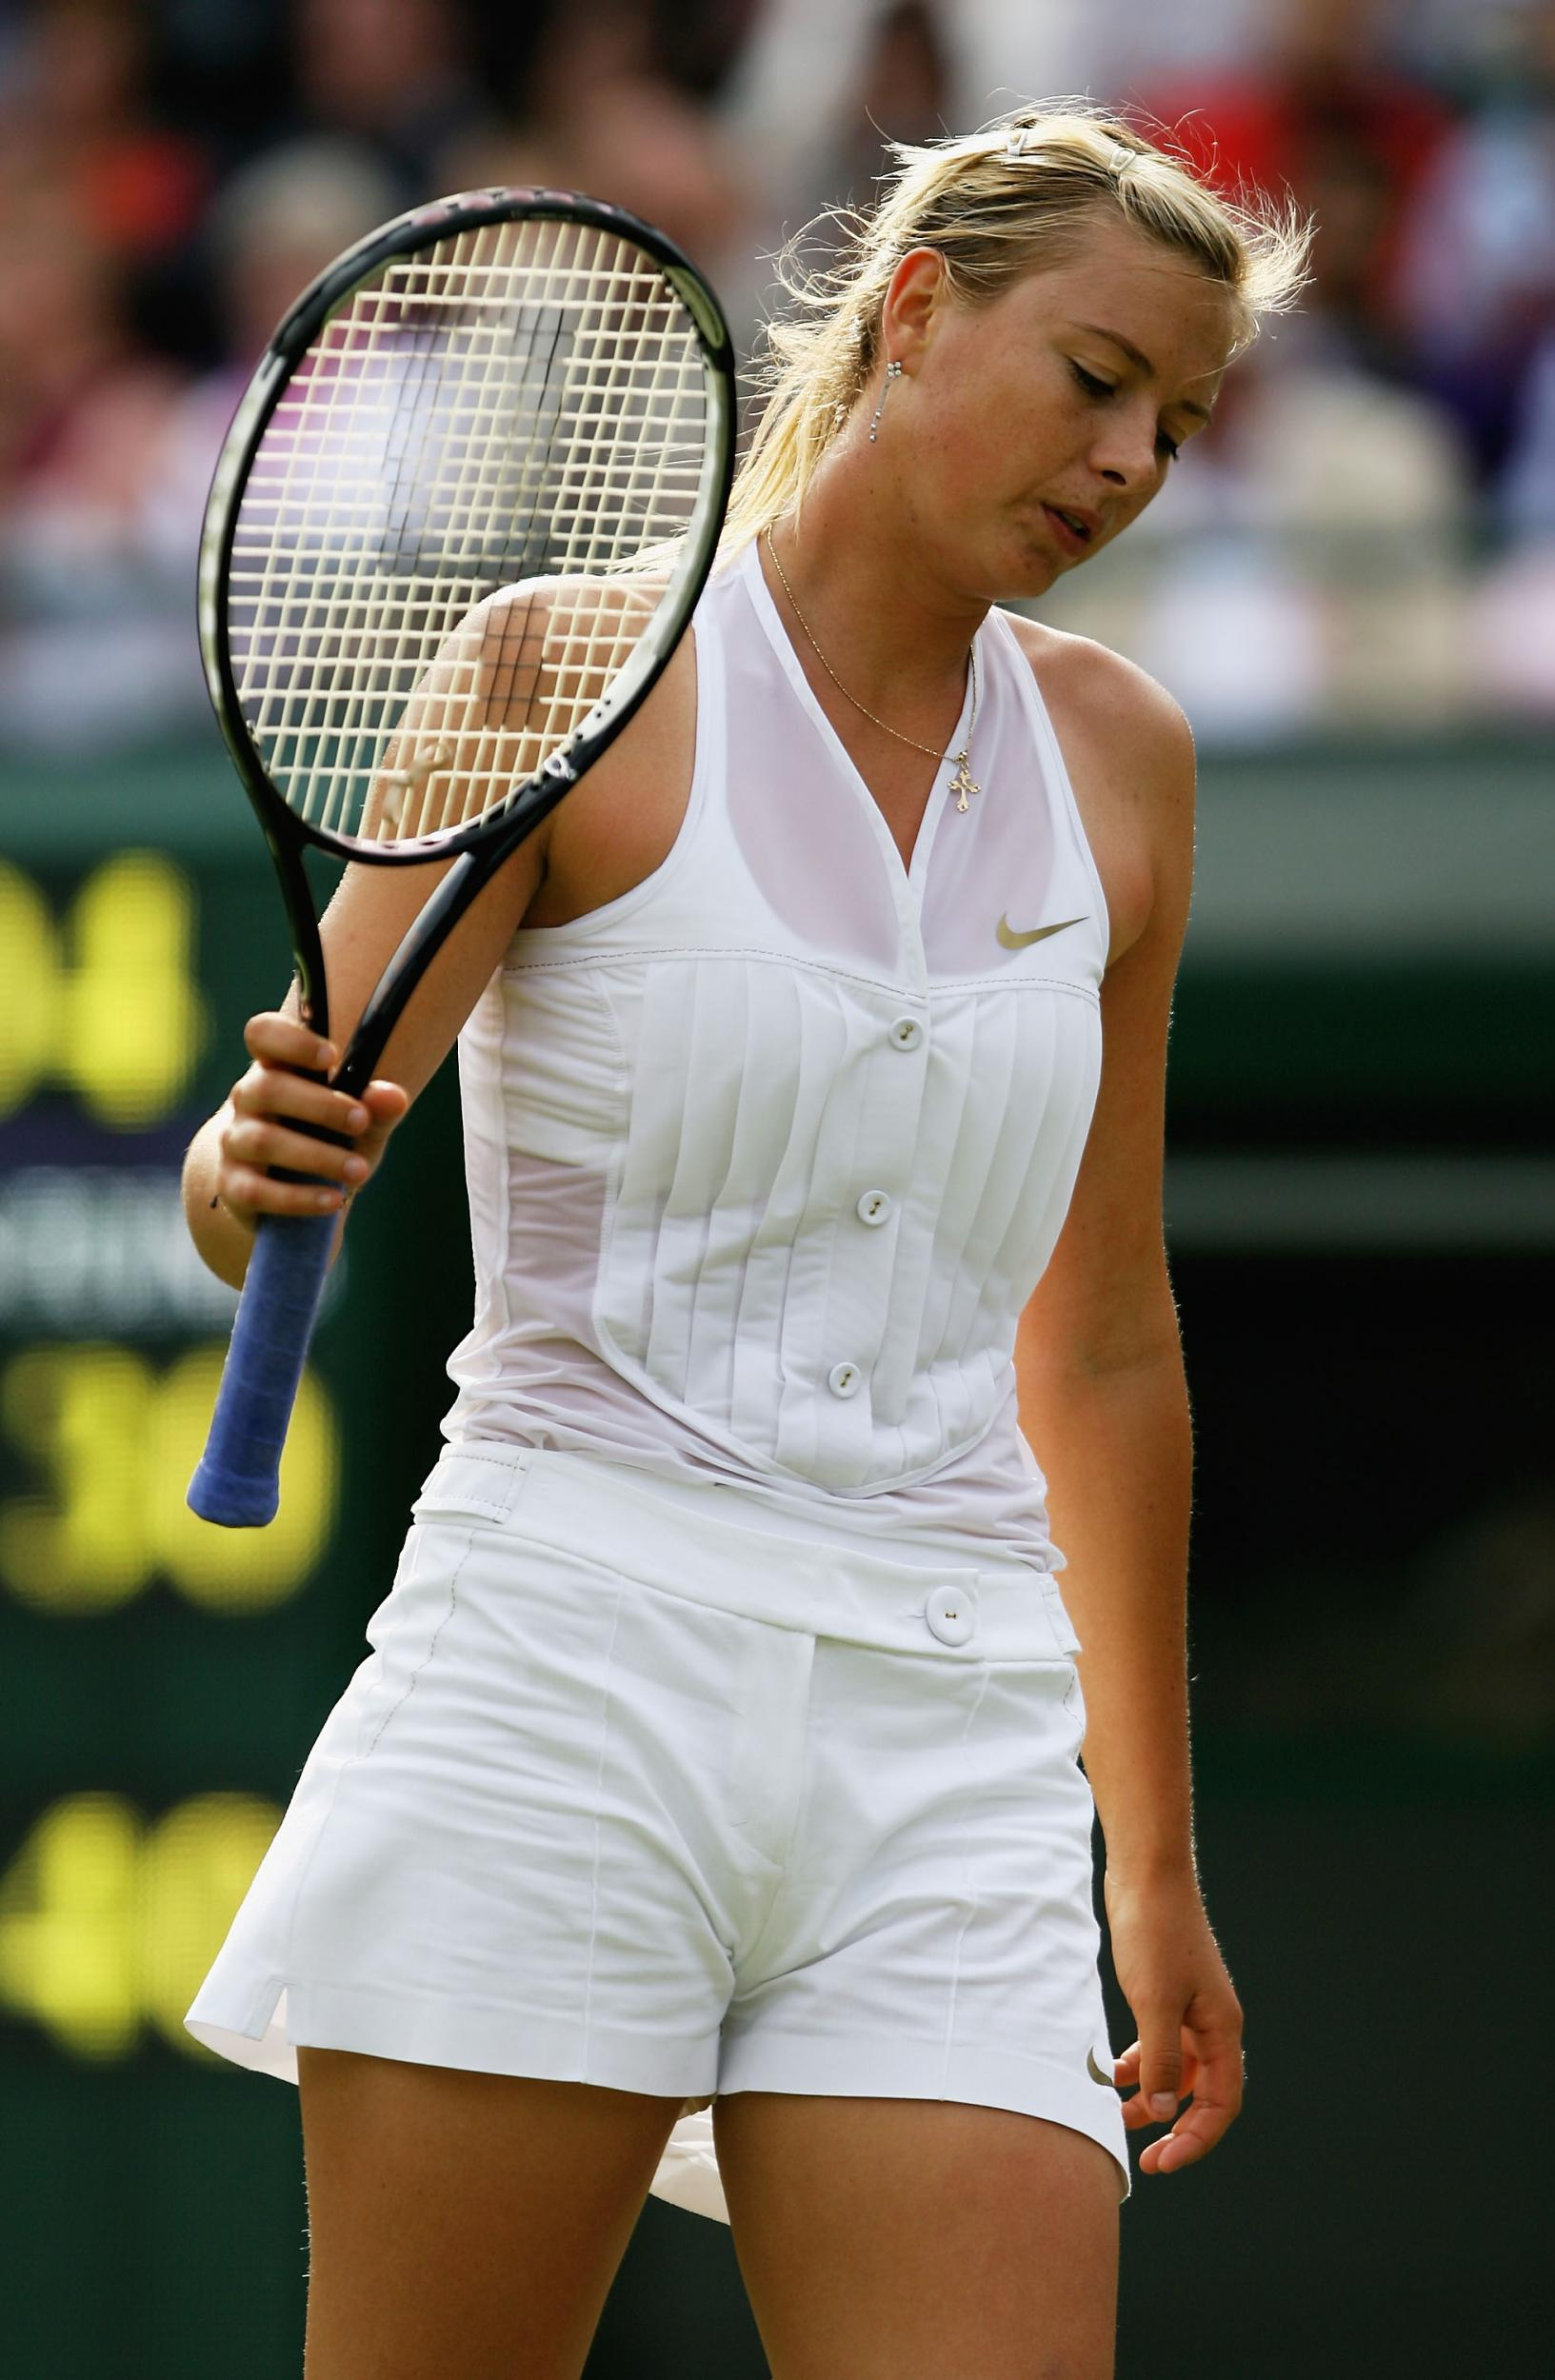 Girls that play tennis that forget thier panties